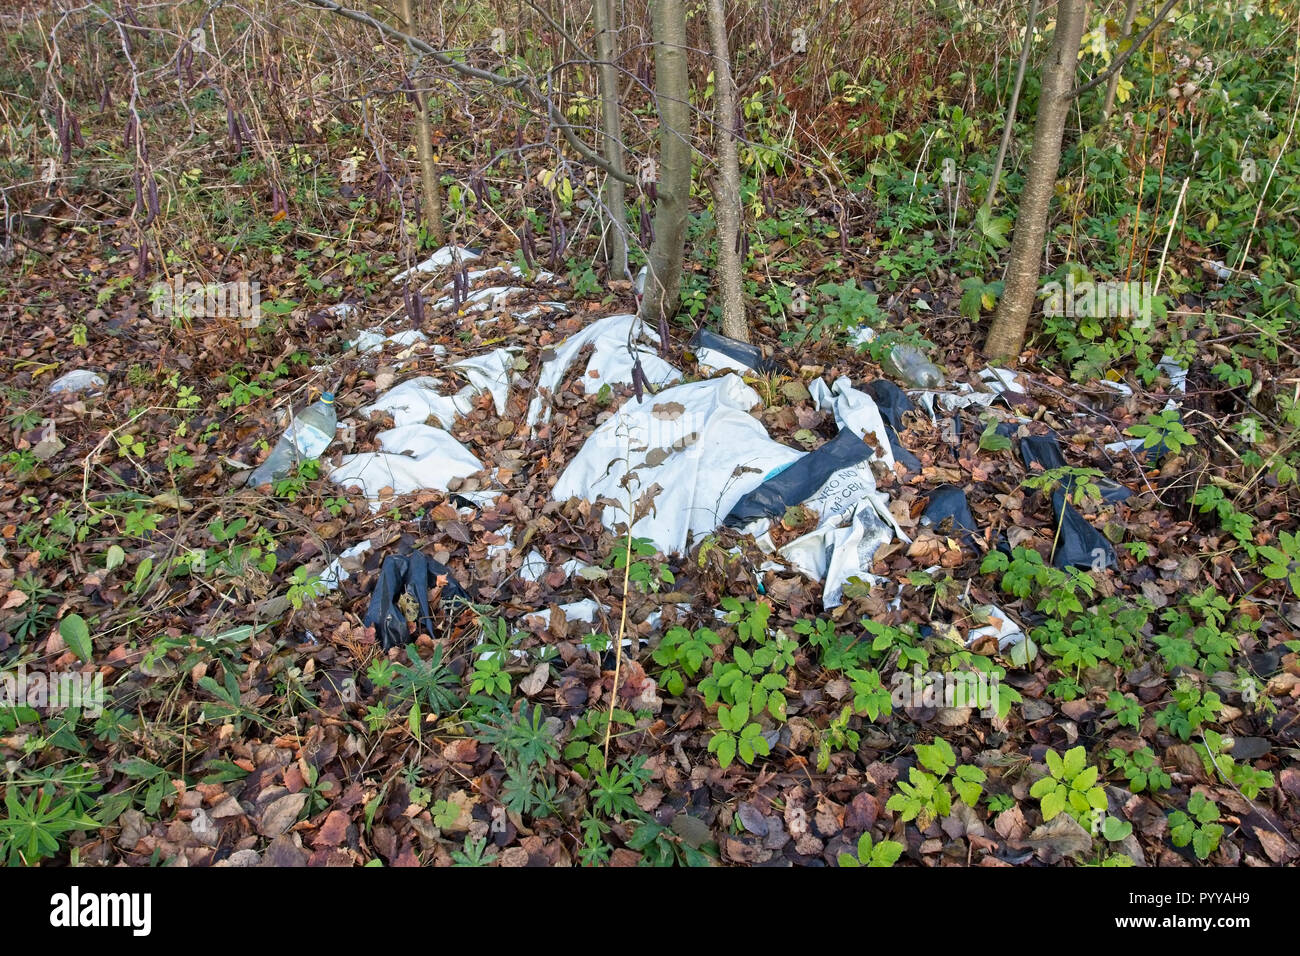 Plastic pollution of forest - Stock Image